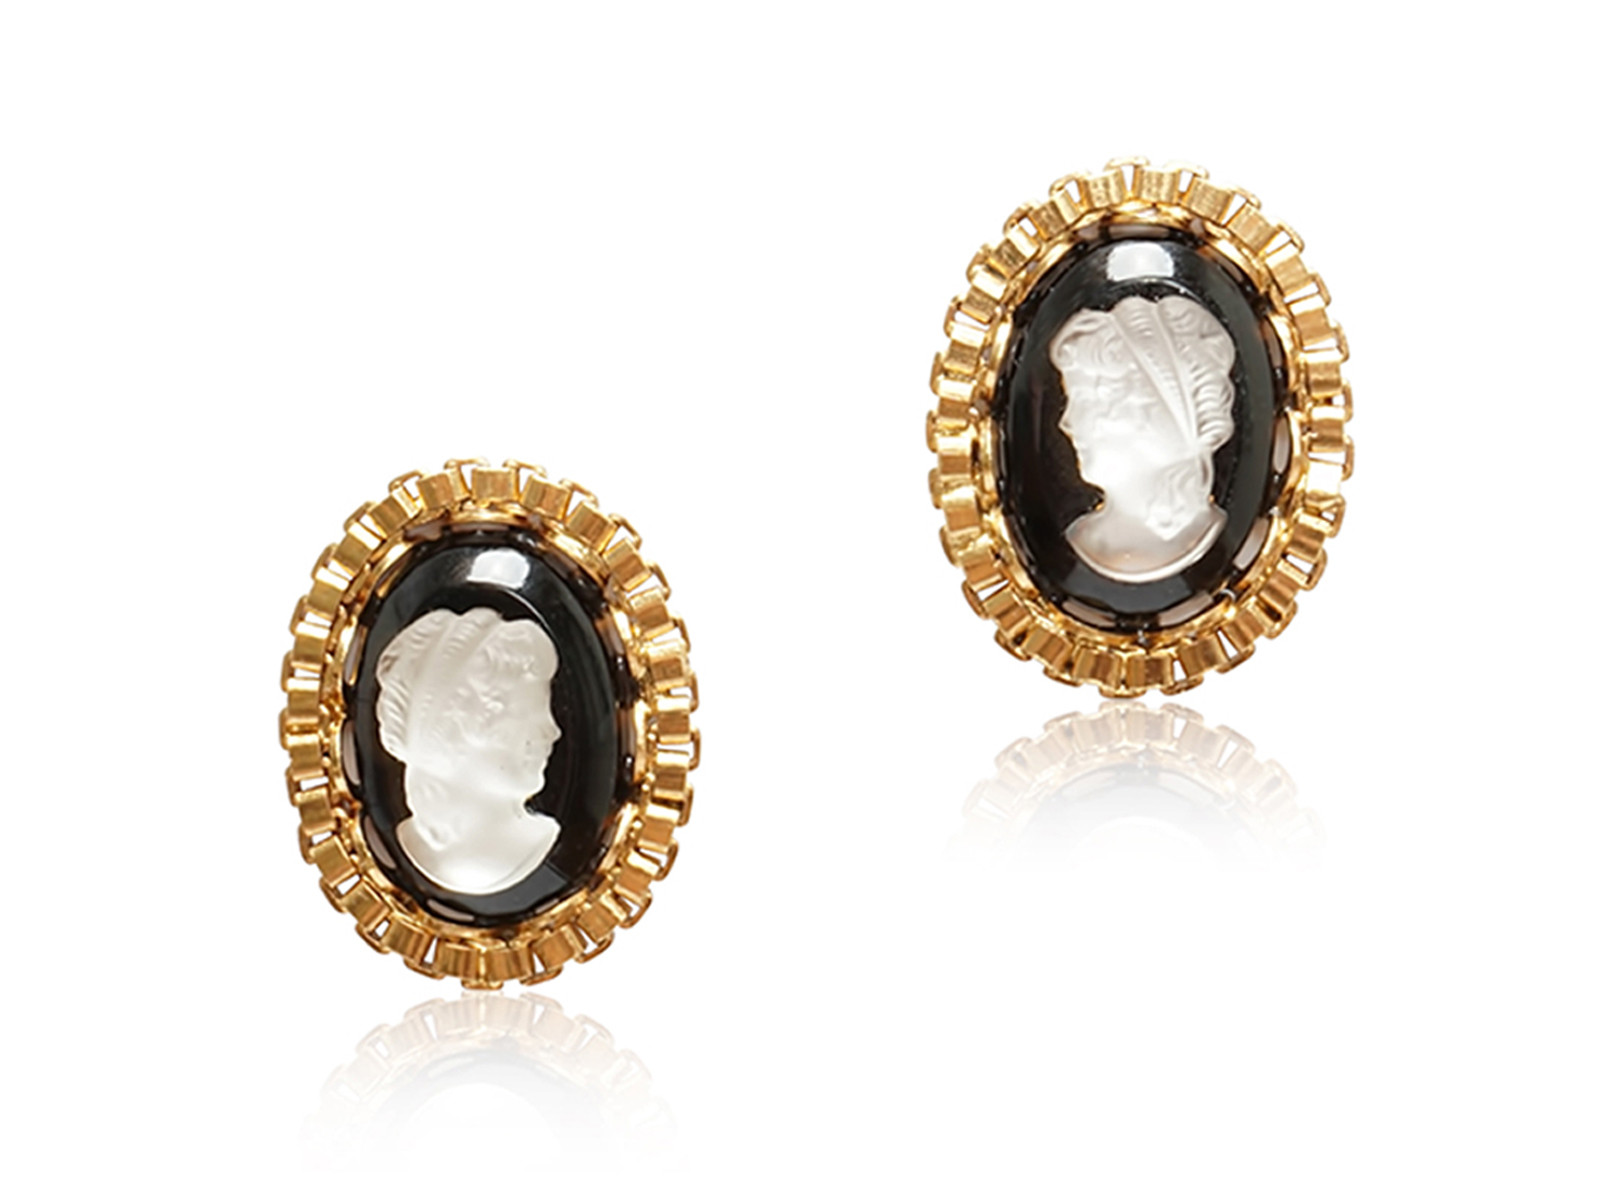 KATE CAMEO STUD EARRINGS